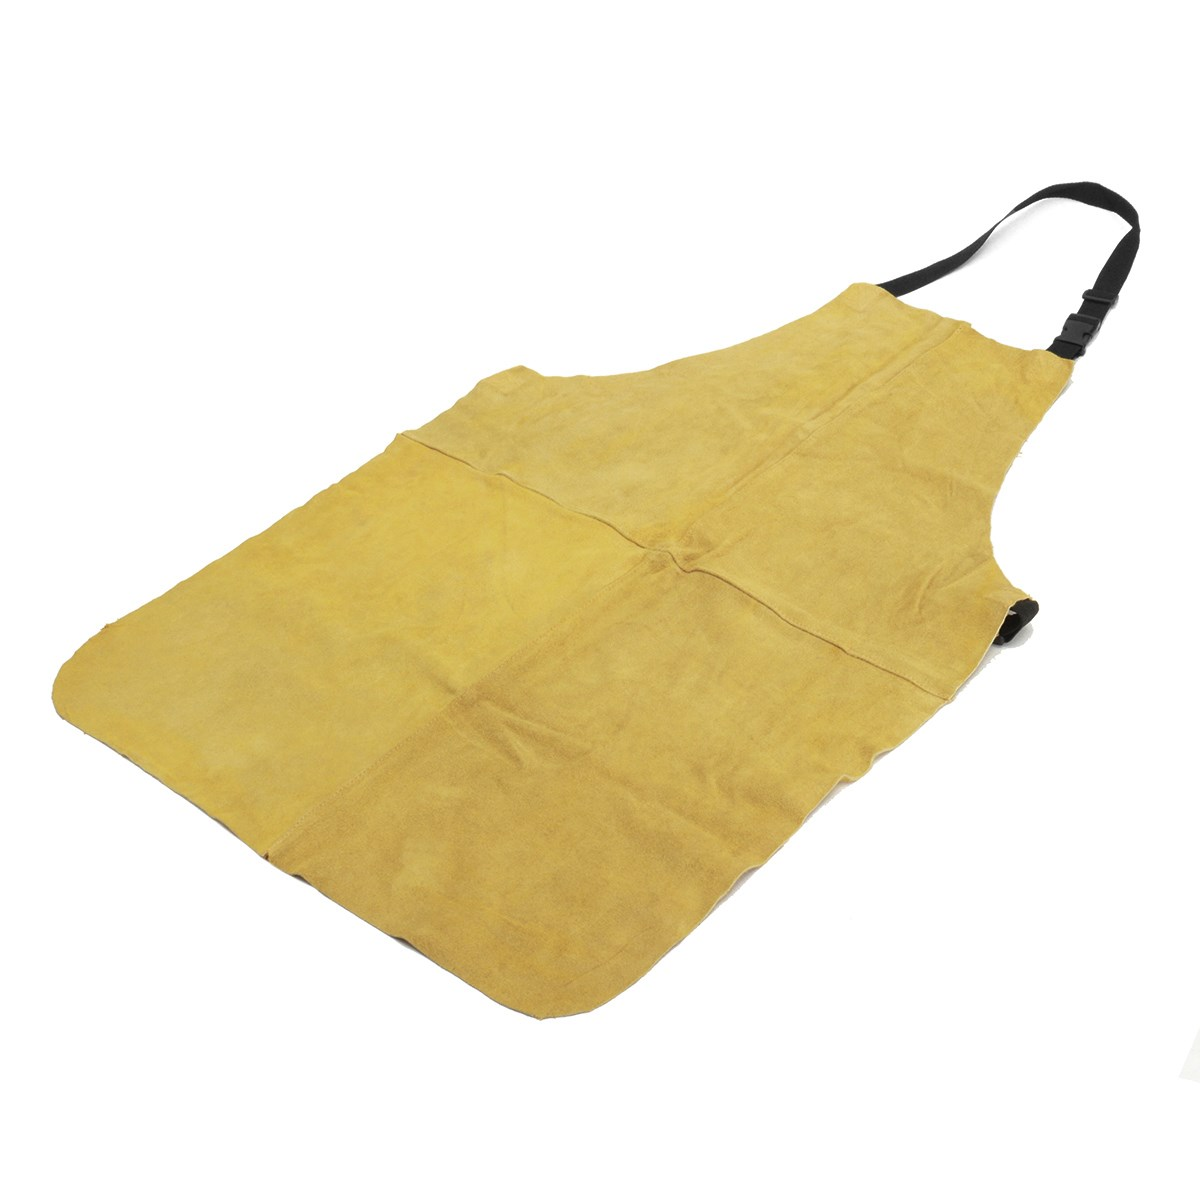 Welders Dual Leather Welding Cutting Bib Shop Apron Heat Resistant Workplace Safety Safety Clothing Self Protect safurance for welders apron heat resistant welding equipment heat insulation protection cow leather apron workplace safety